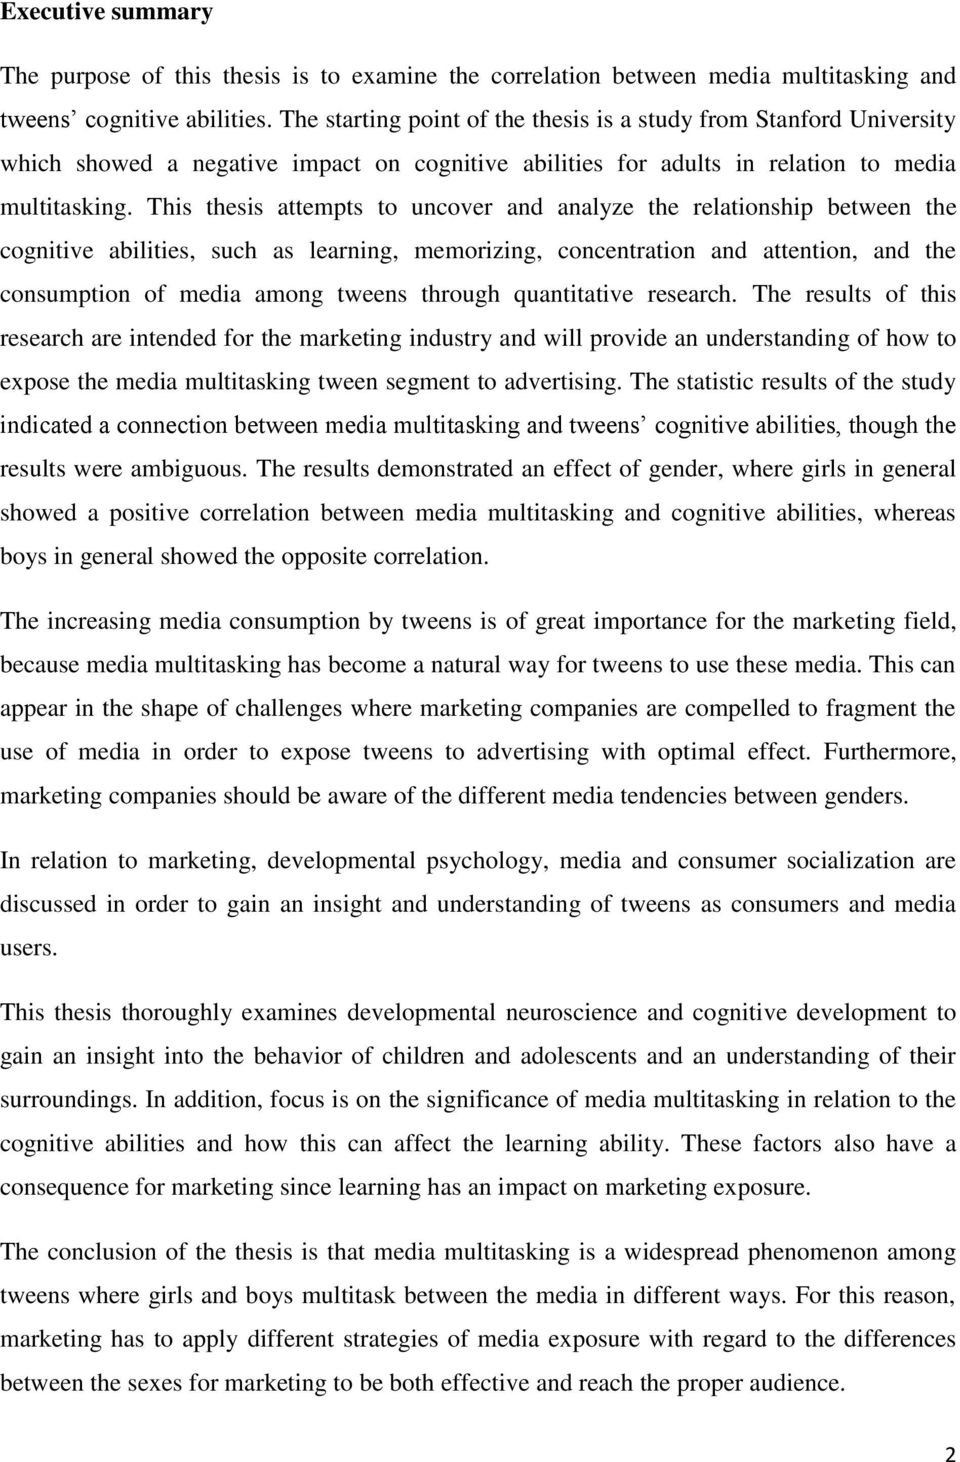 This thesis attempts to uncover and analyze the relationship between the cognitive abilities, such as learning, memorizing, concentration and attention, and the consumption of media among tweens